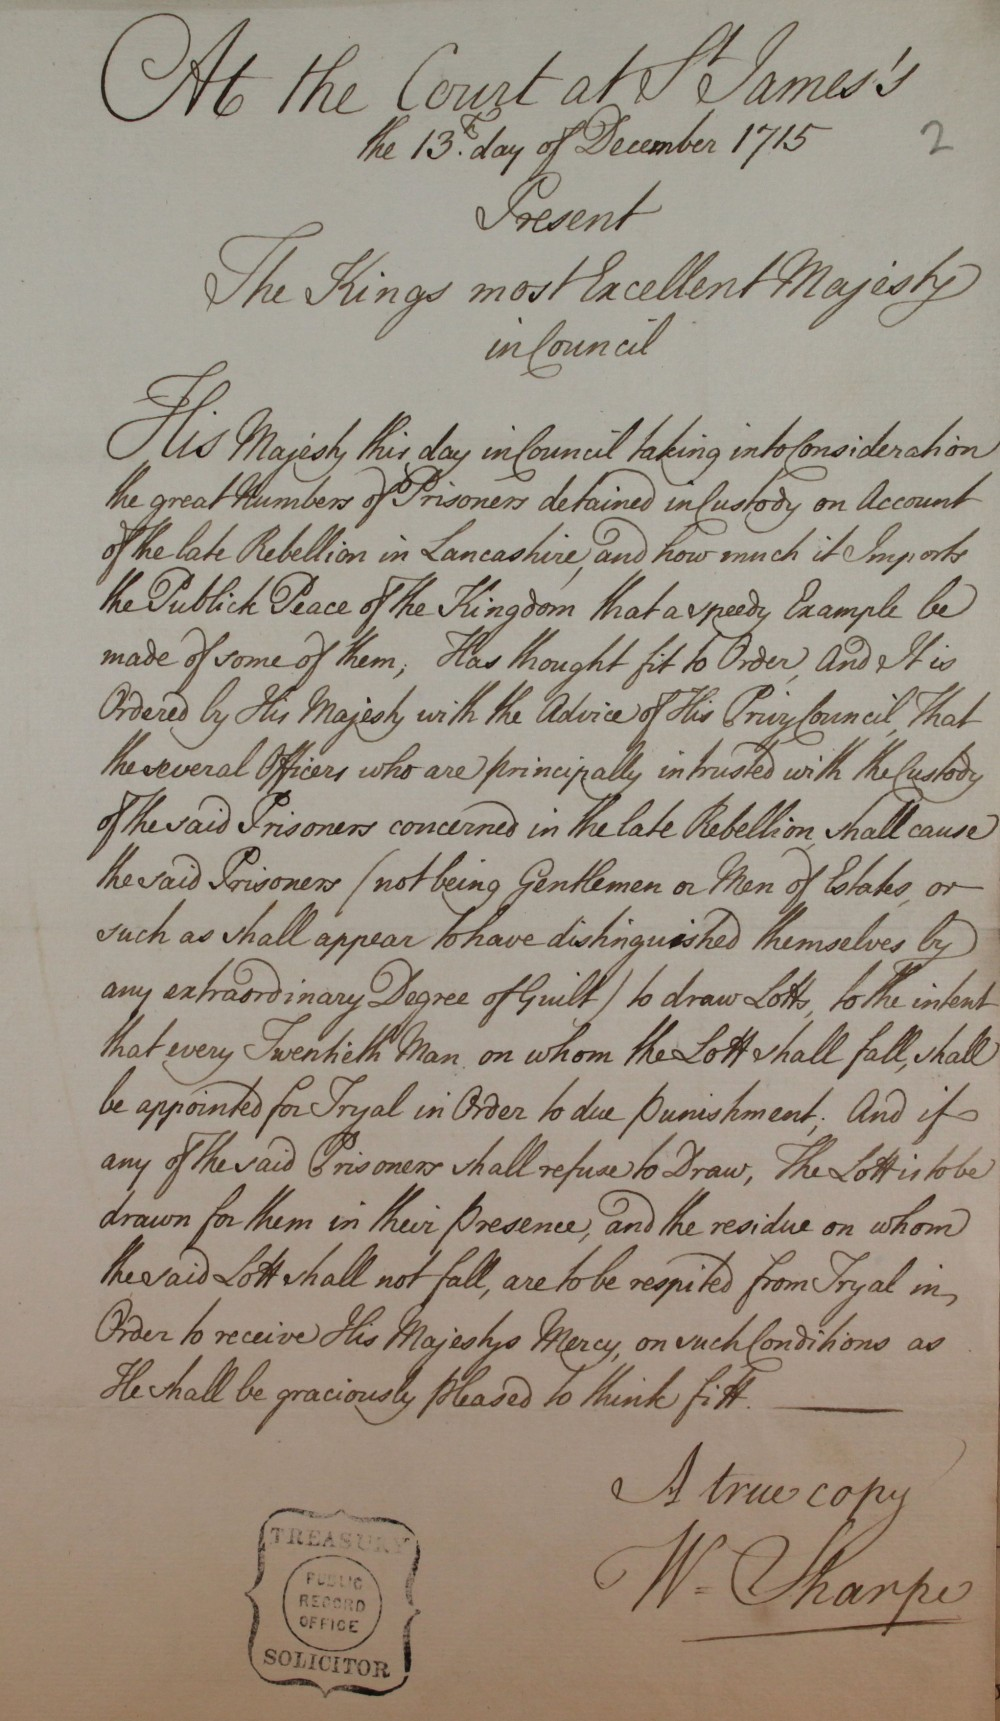 An order on behalf of King George I, cat. ref. TS 20/44